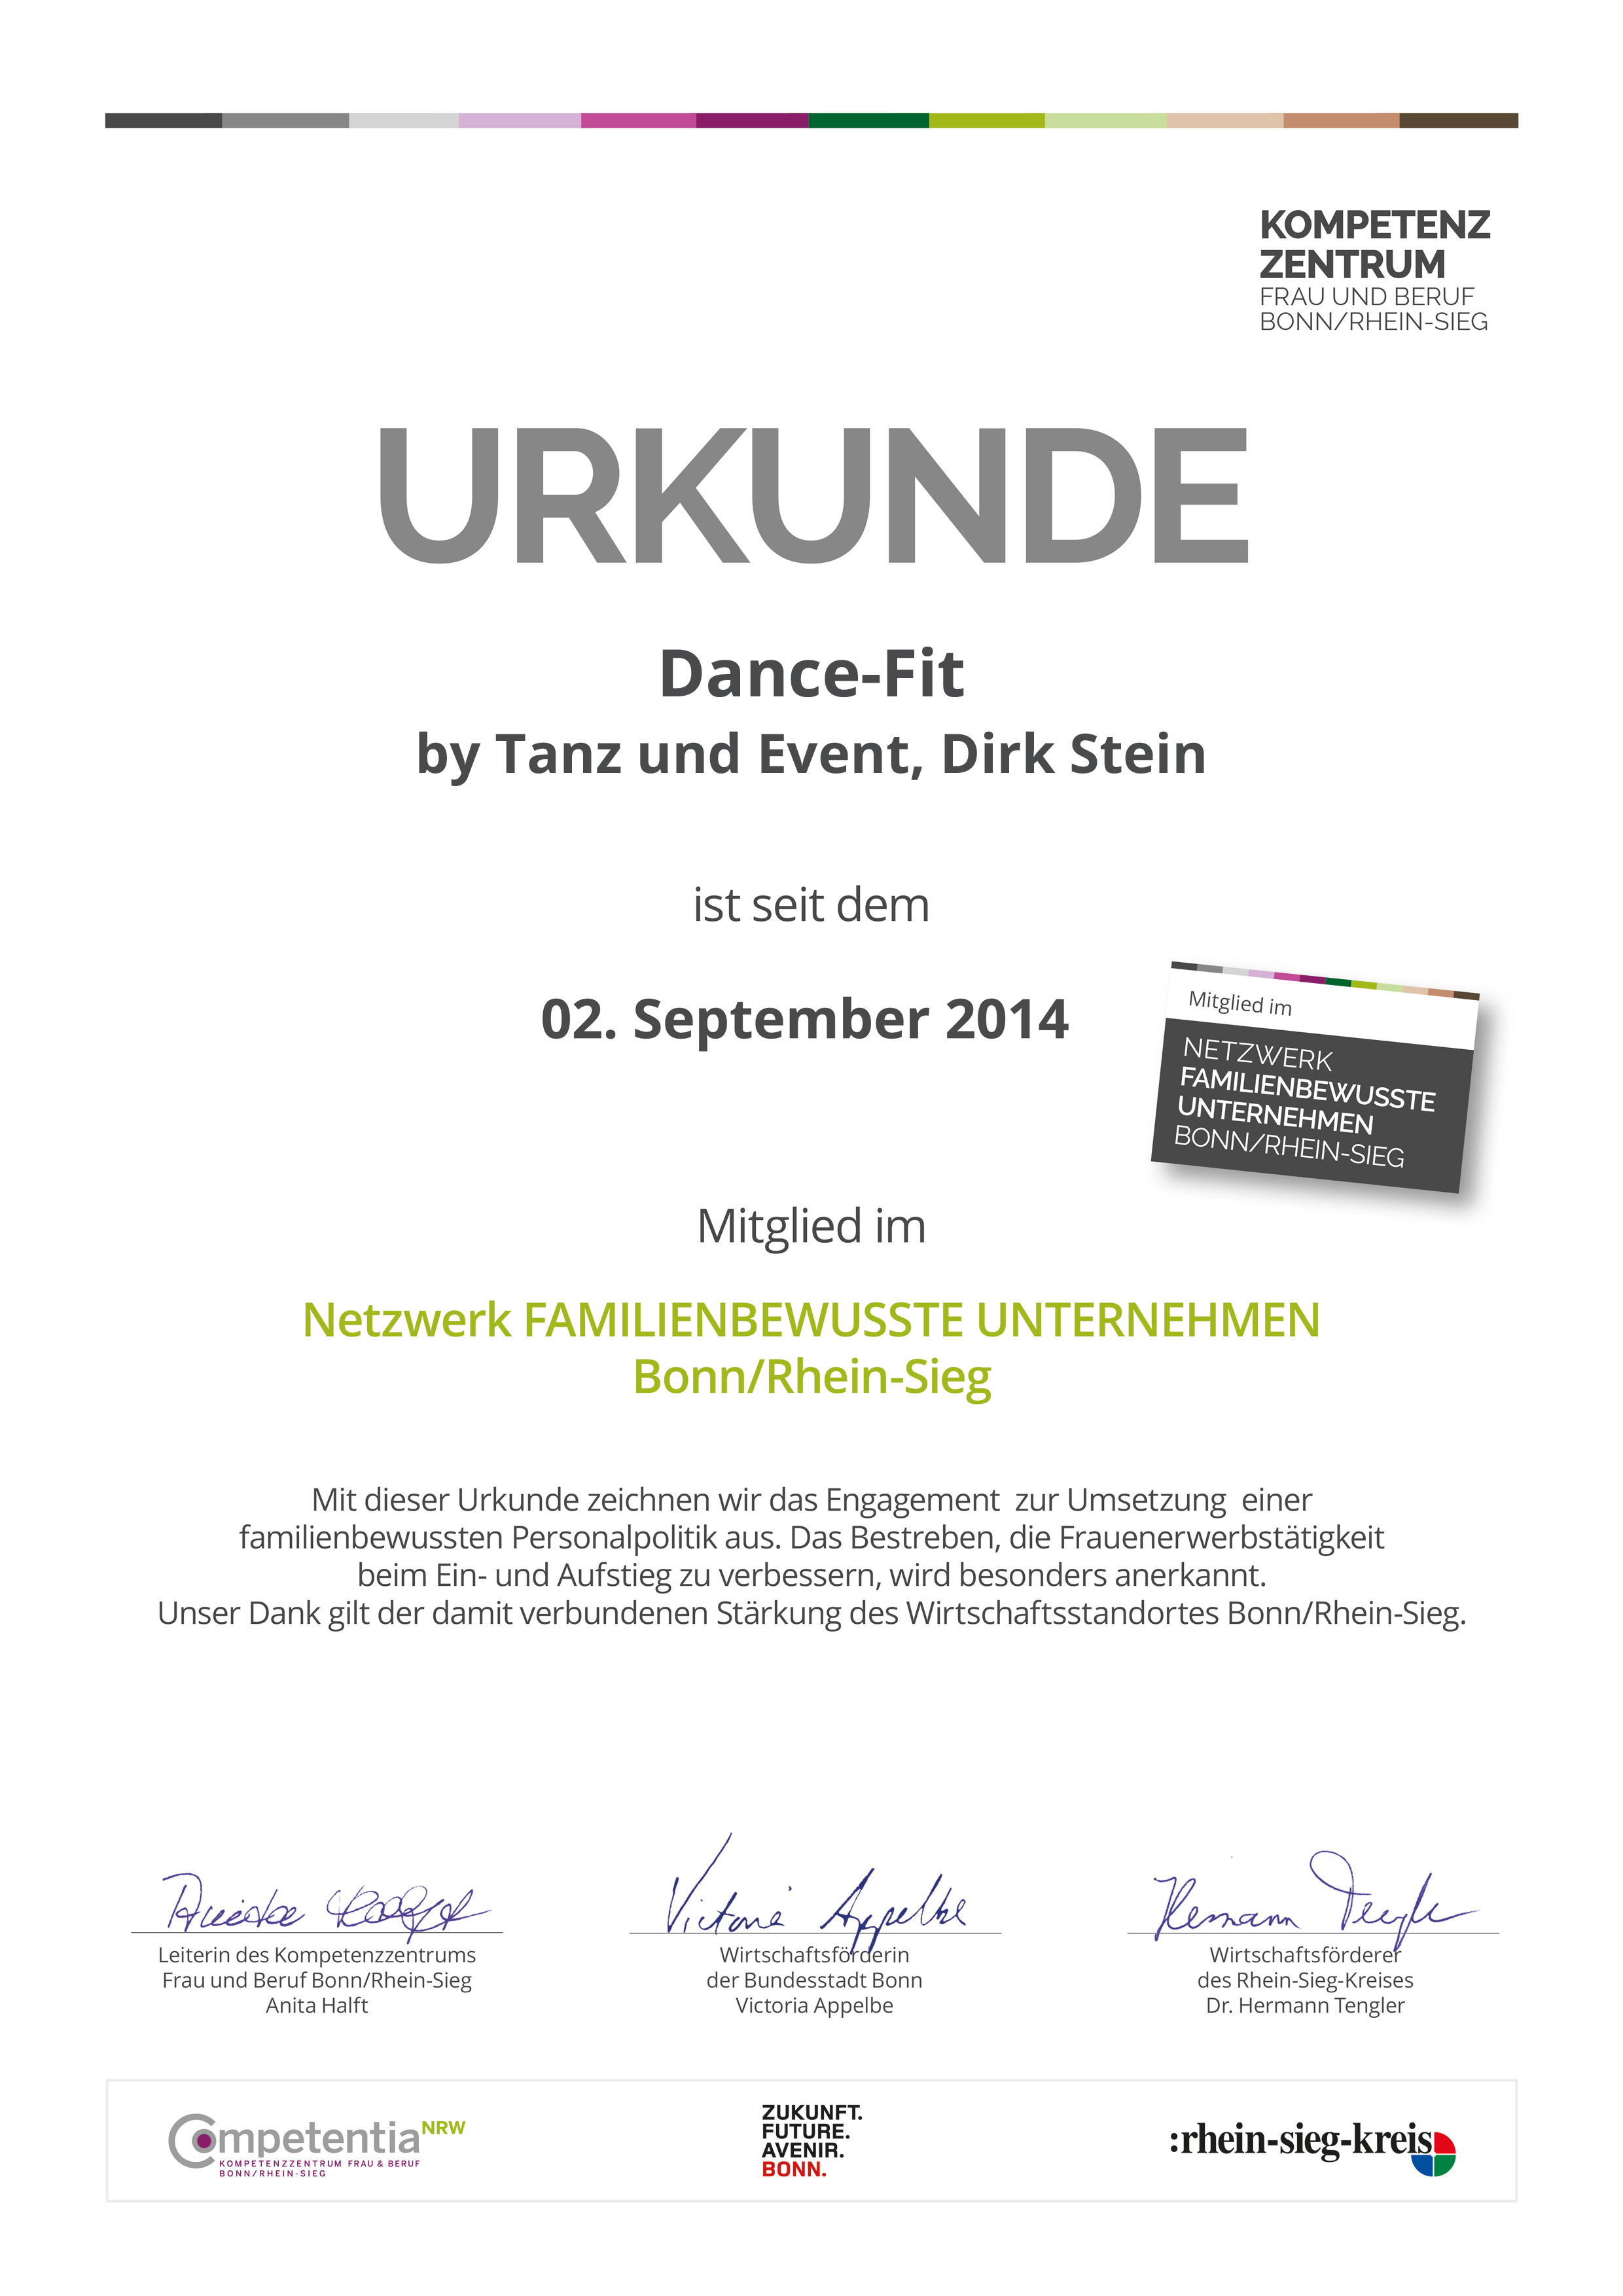 Dance-Fit Urkunde